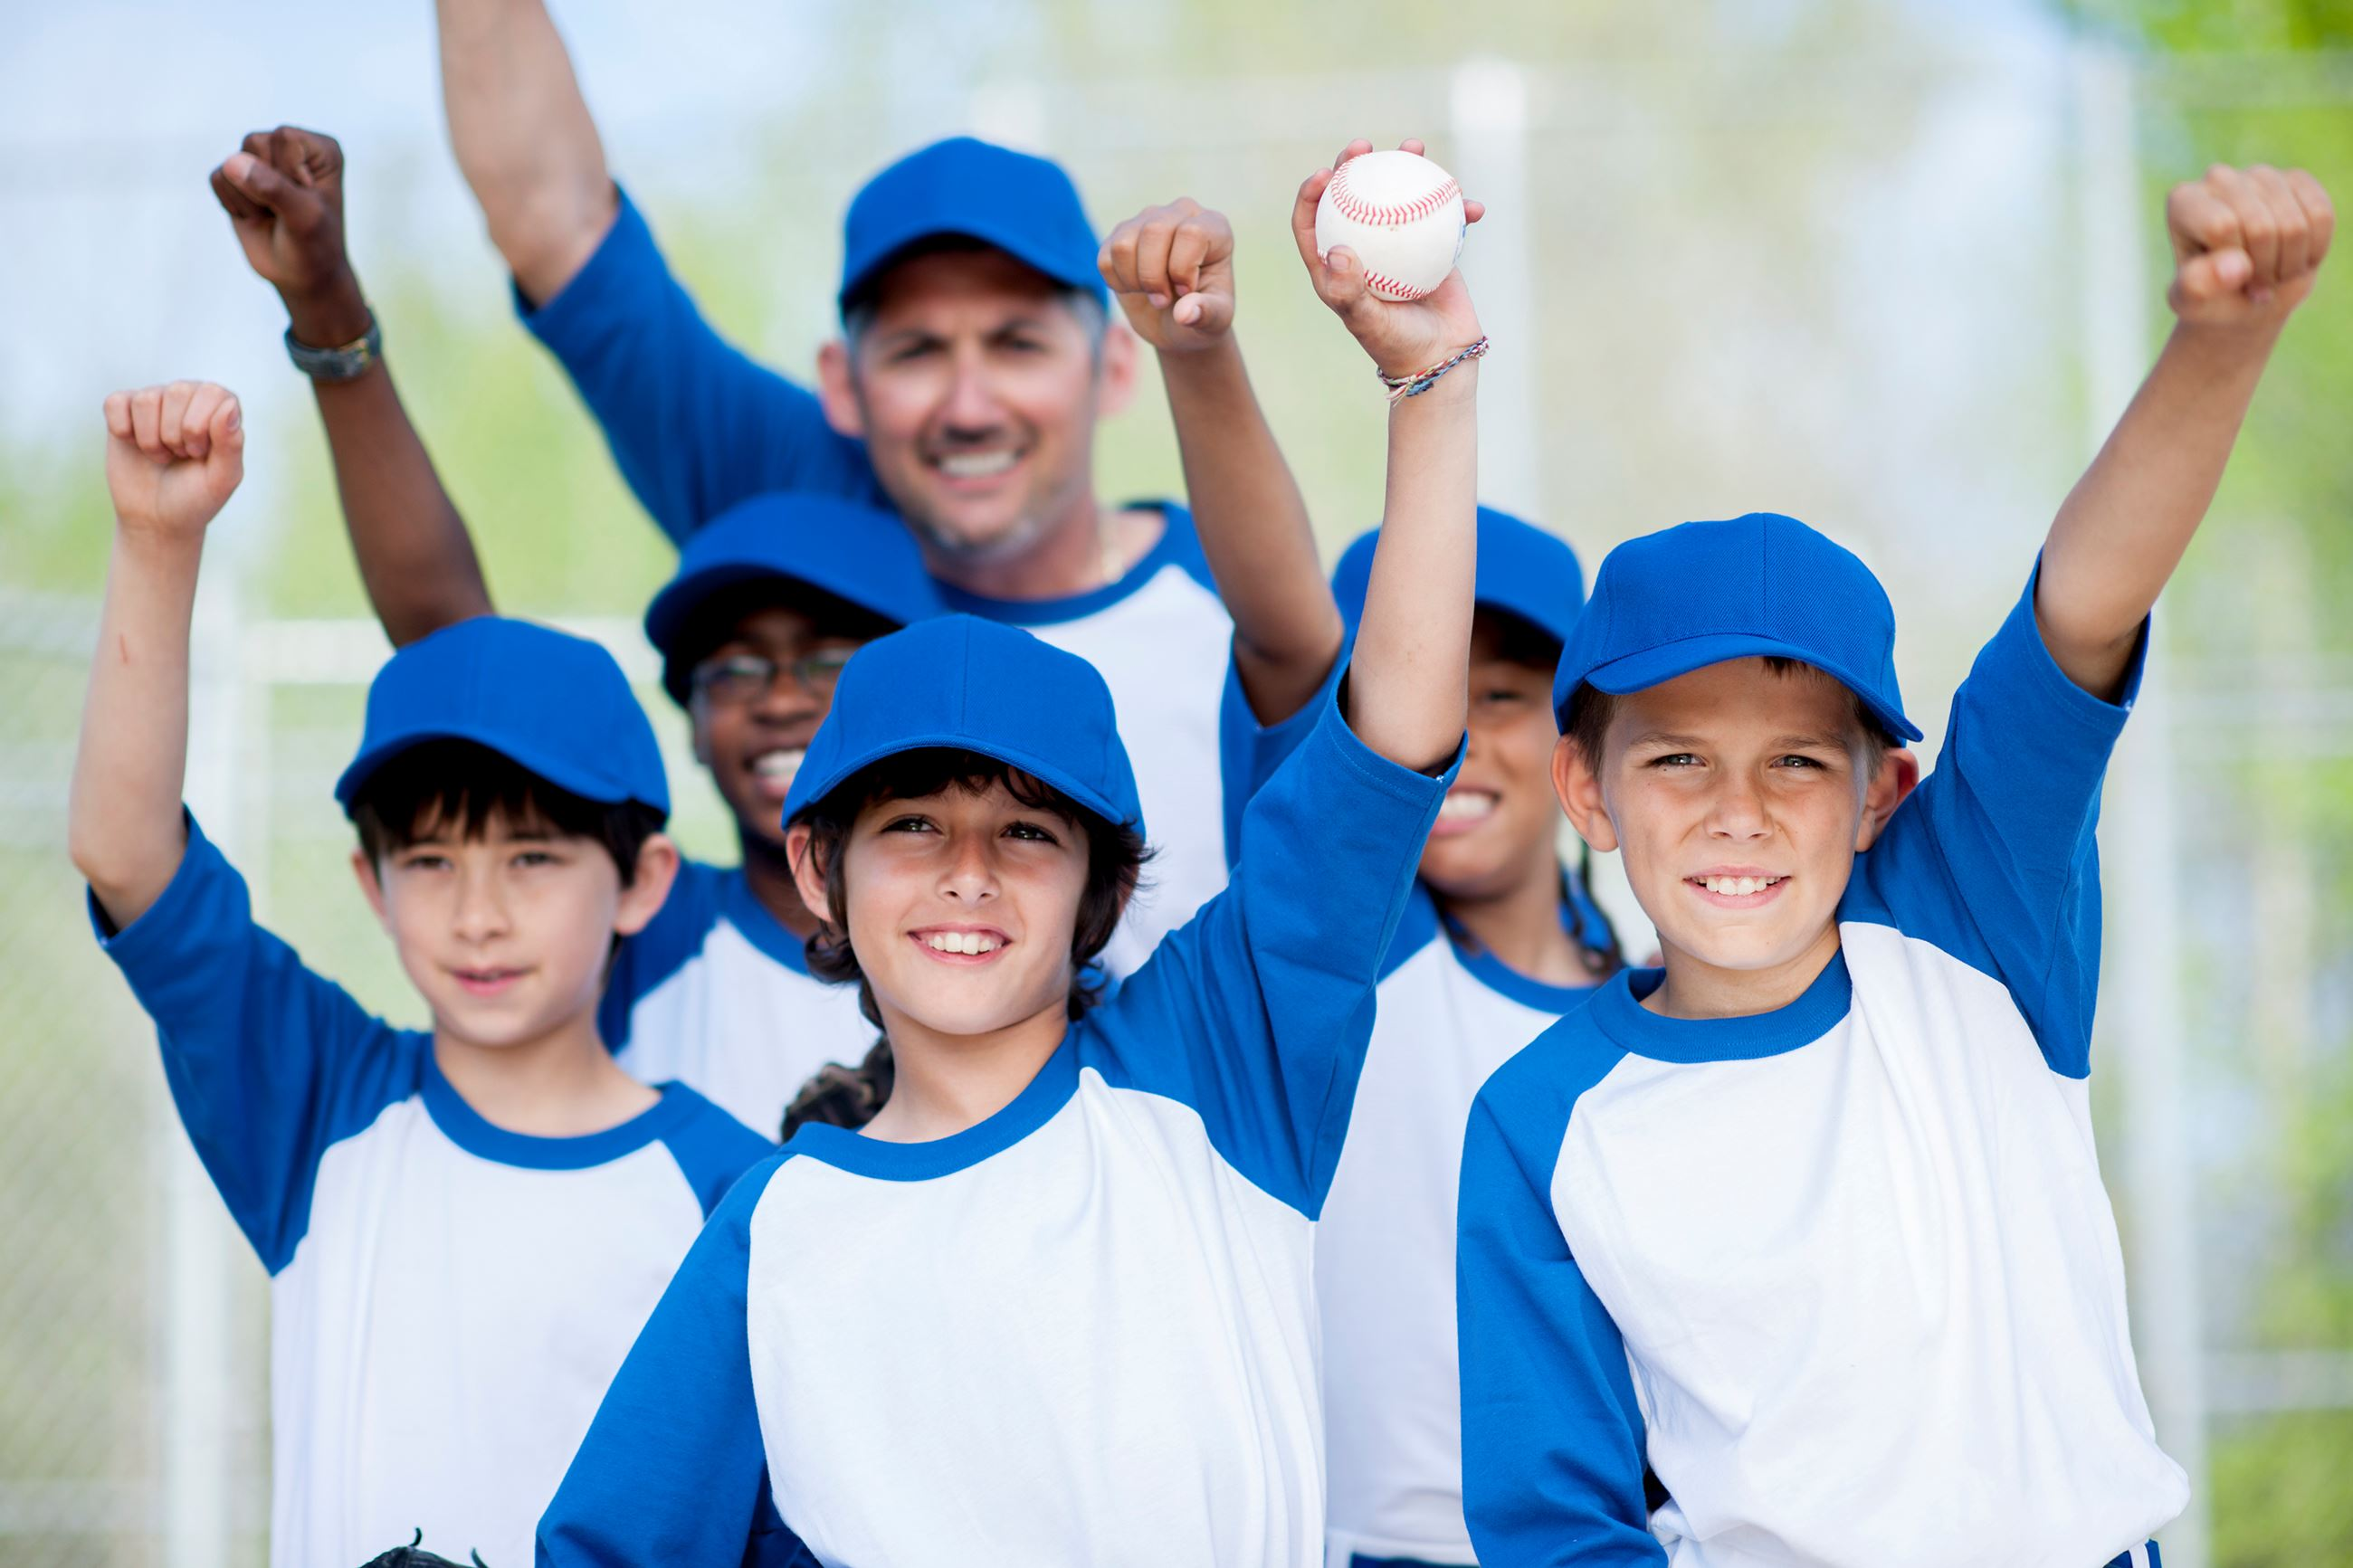 Little-League-Baseball-468483256_6048x4032